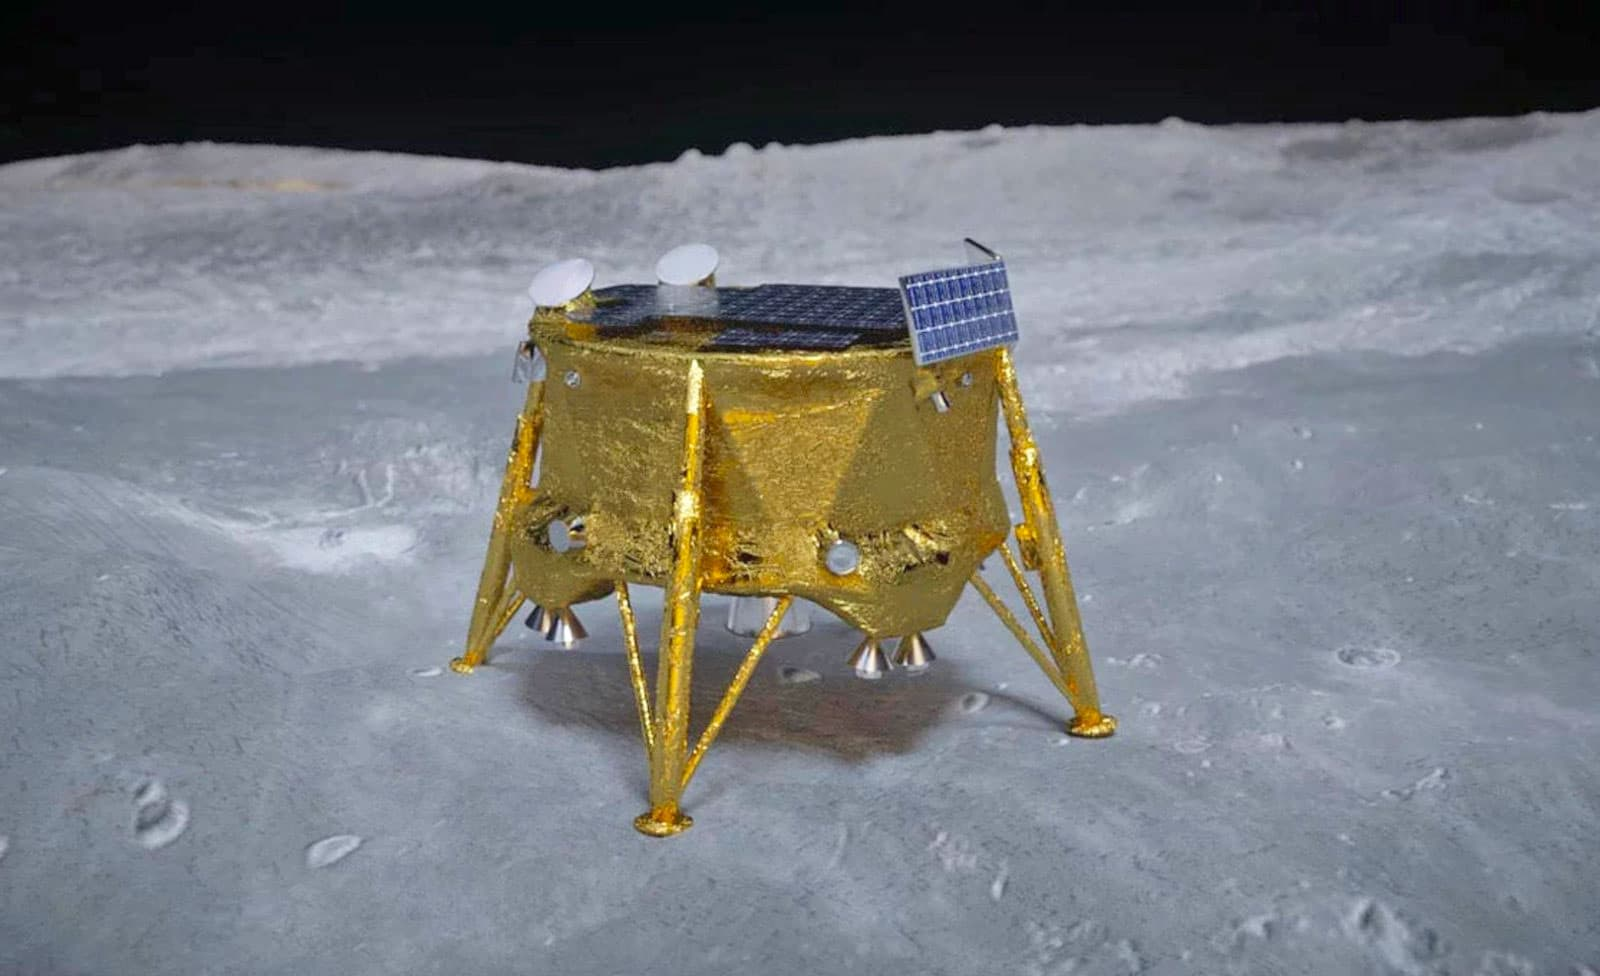 spacex lunar module - photo #25